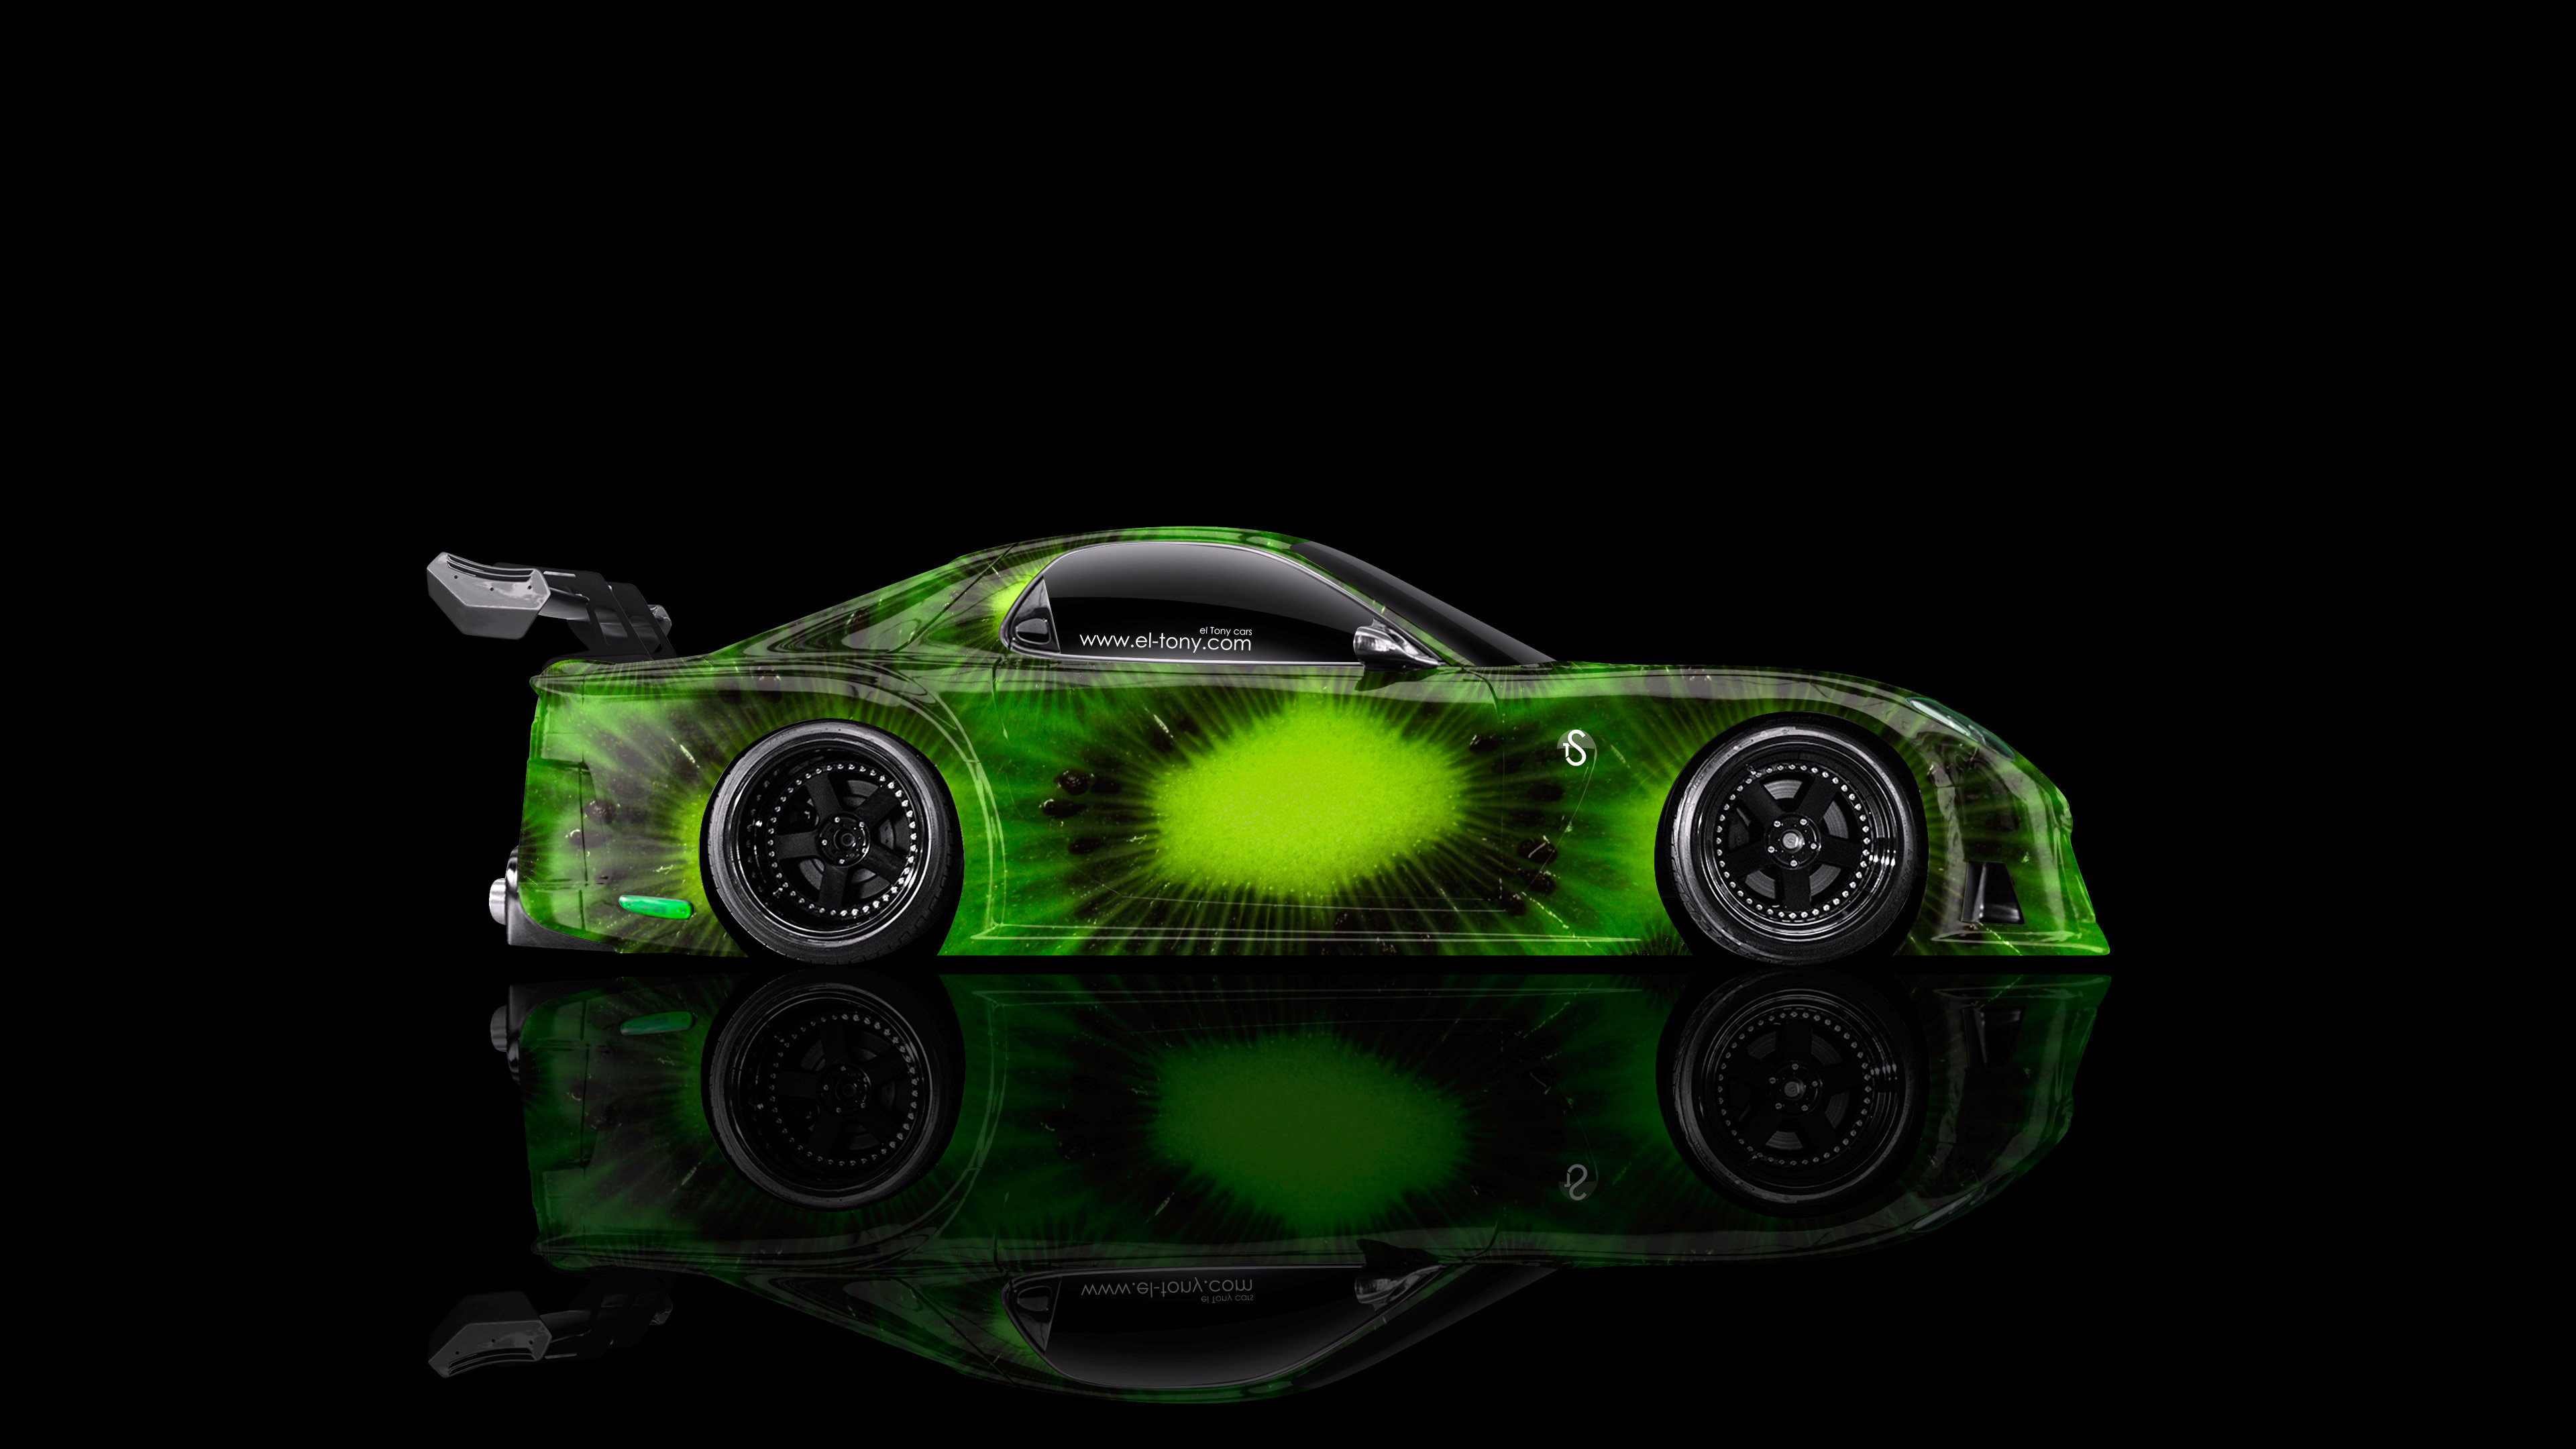 Mazda-RX7-VeilSide-JDM-Side-Kiwi-Aerography-Car-2014-Green-Colors-4K-Wallpapers-design-by-Tony-Kokhan-[www.el-tony.com]